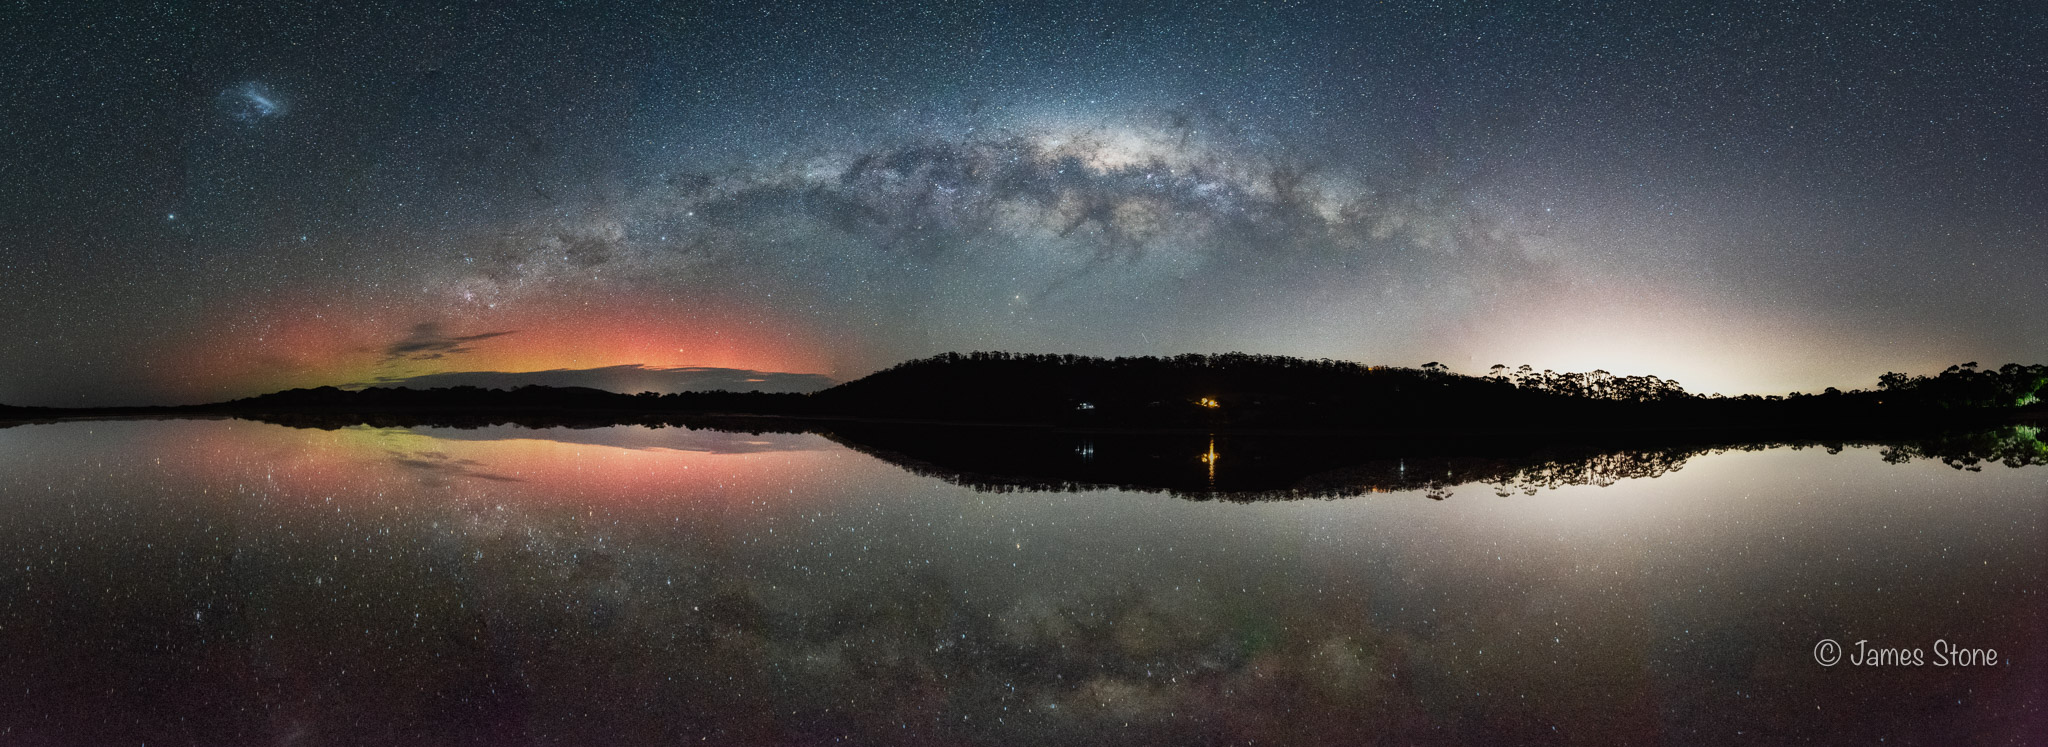 Aurora and Milky Way reflections